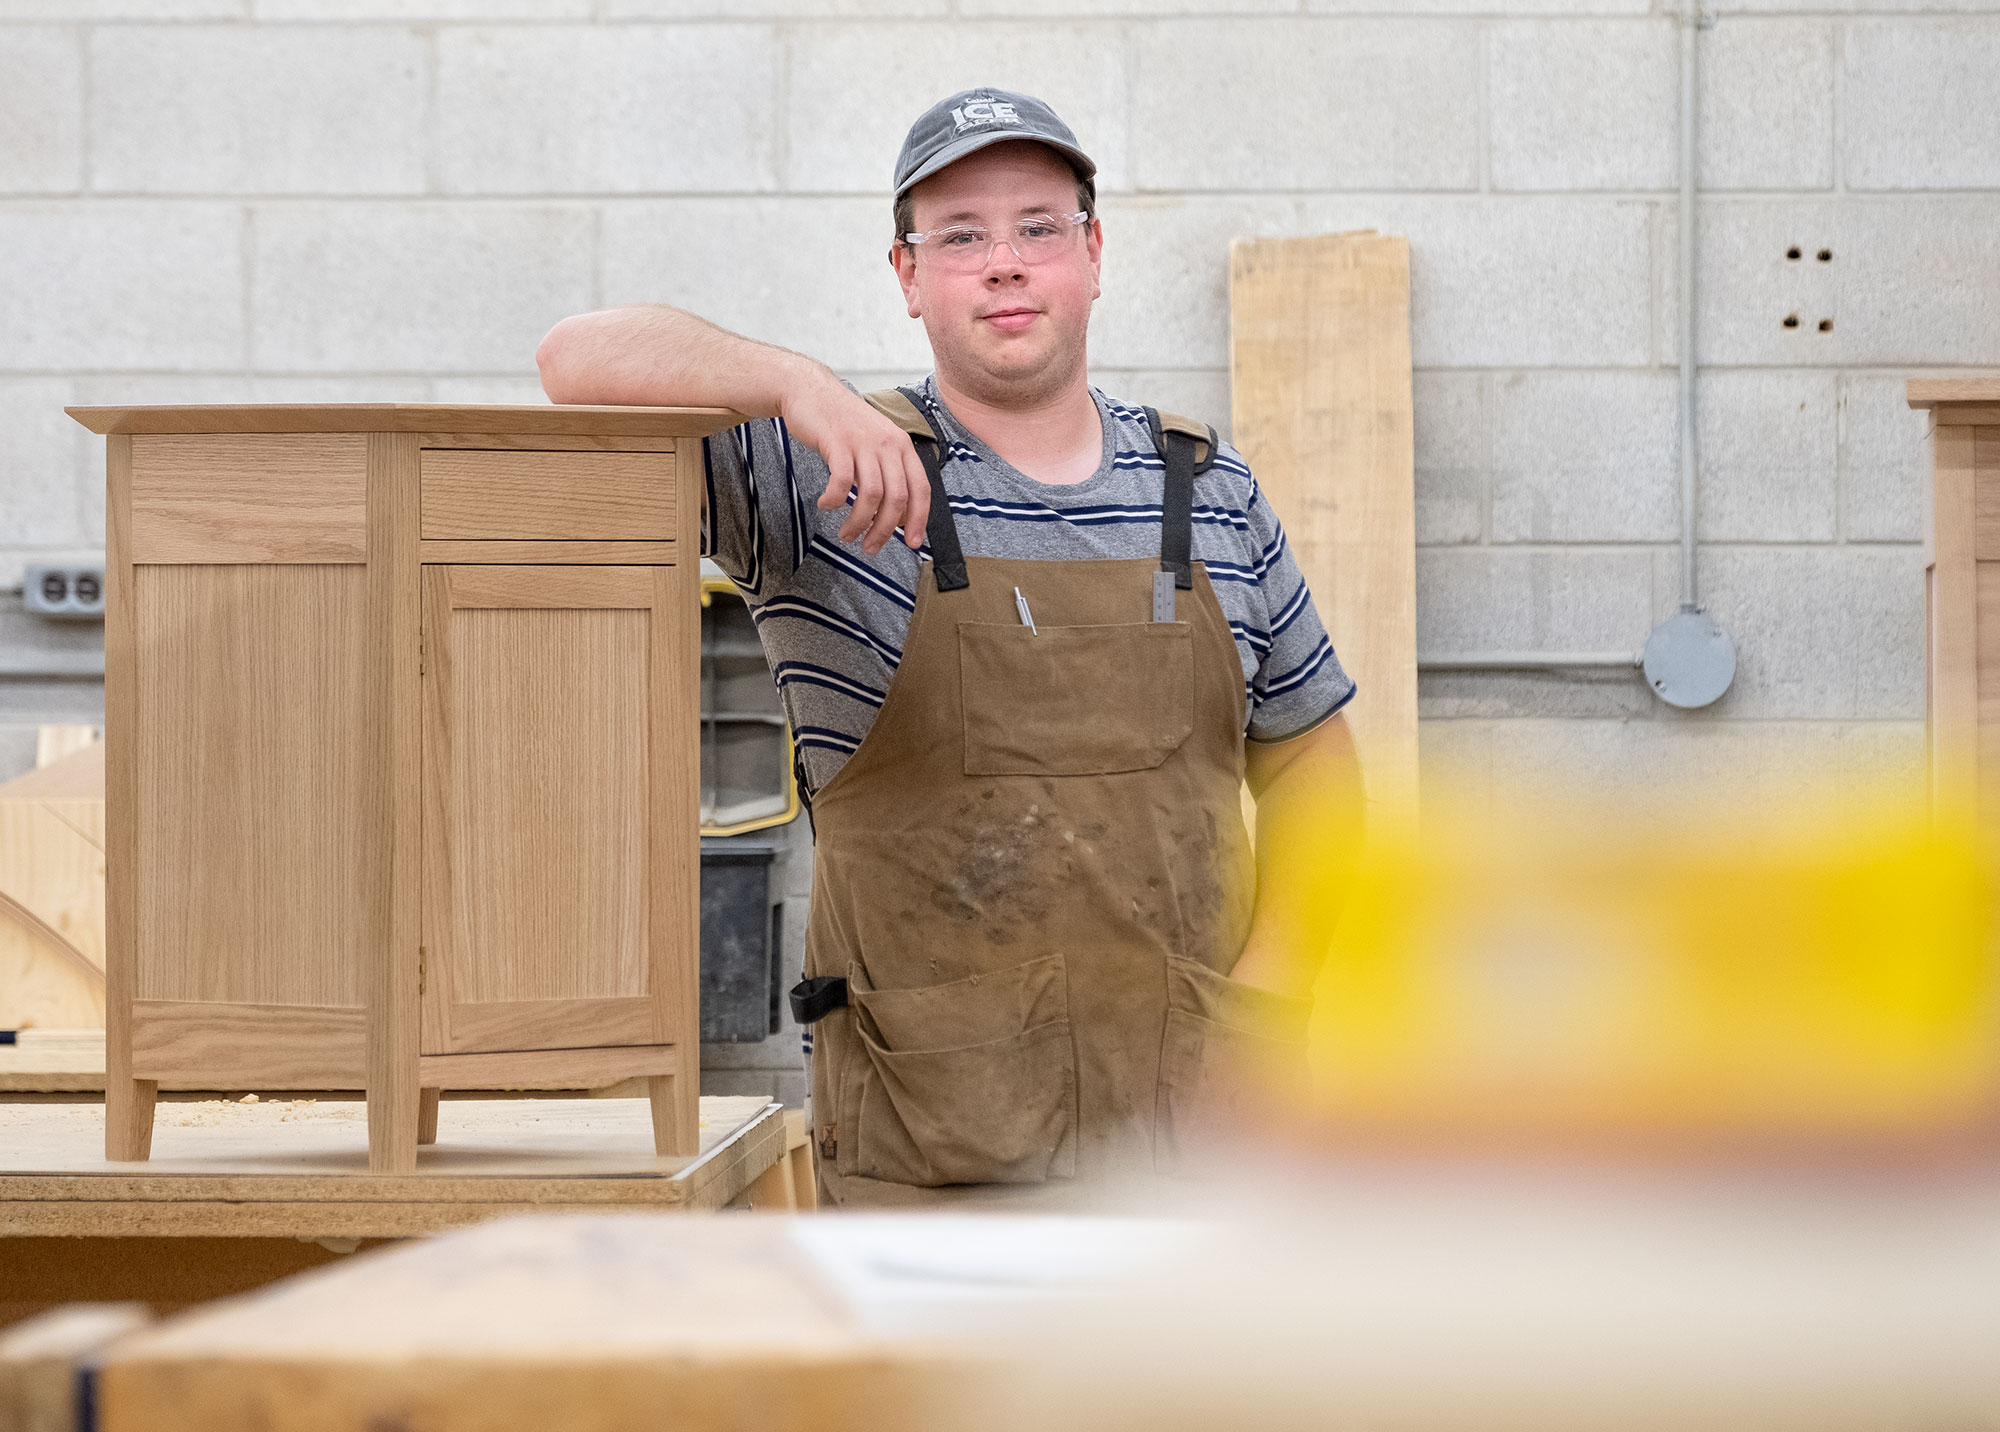 A white male wearing overalls leaning on a cabinet. He's wearing ia blue baseball hat and a blue and white striped shirt.